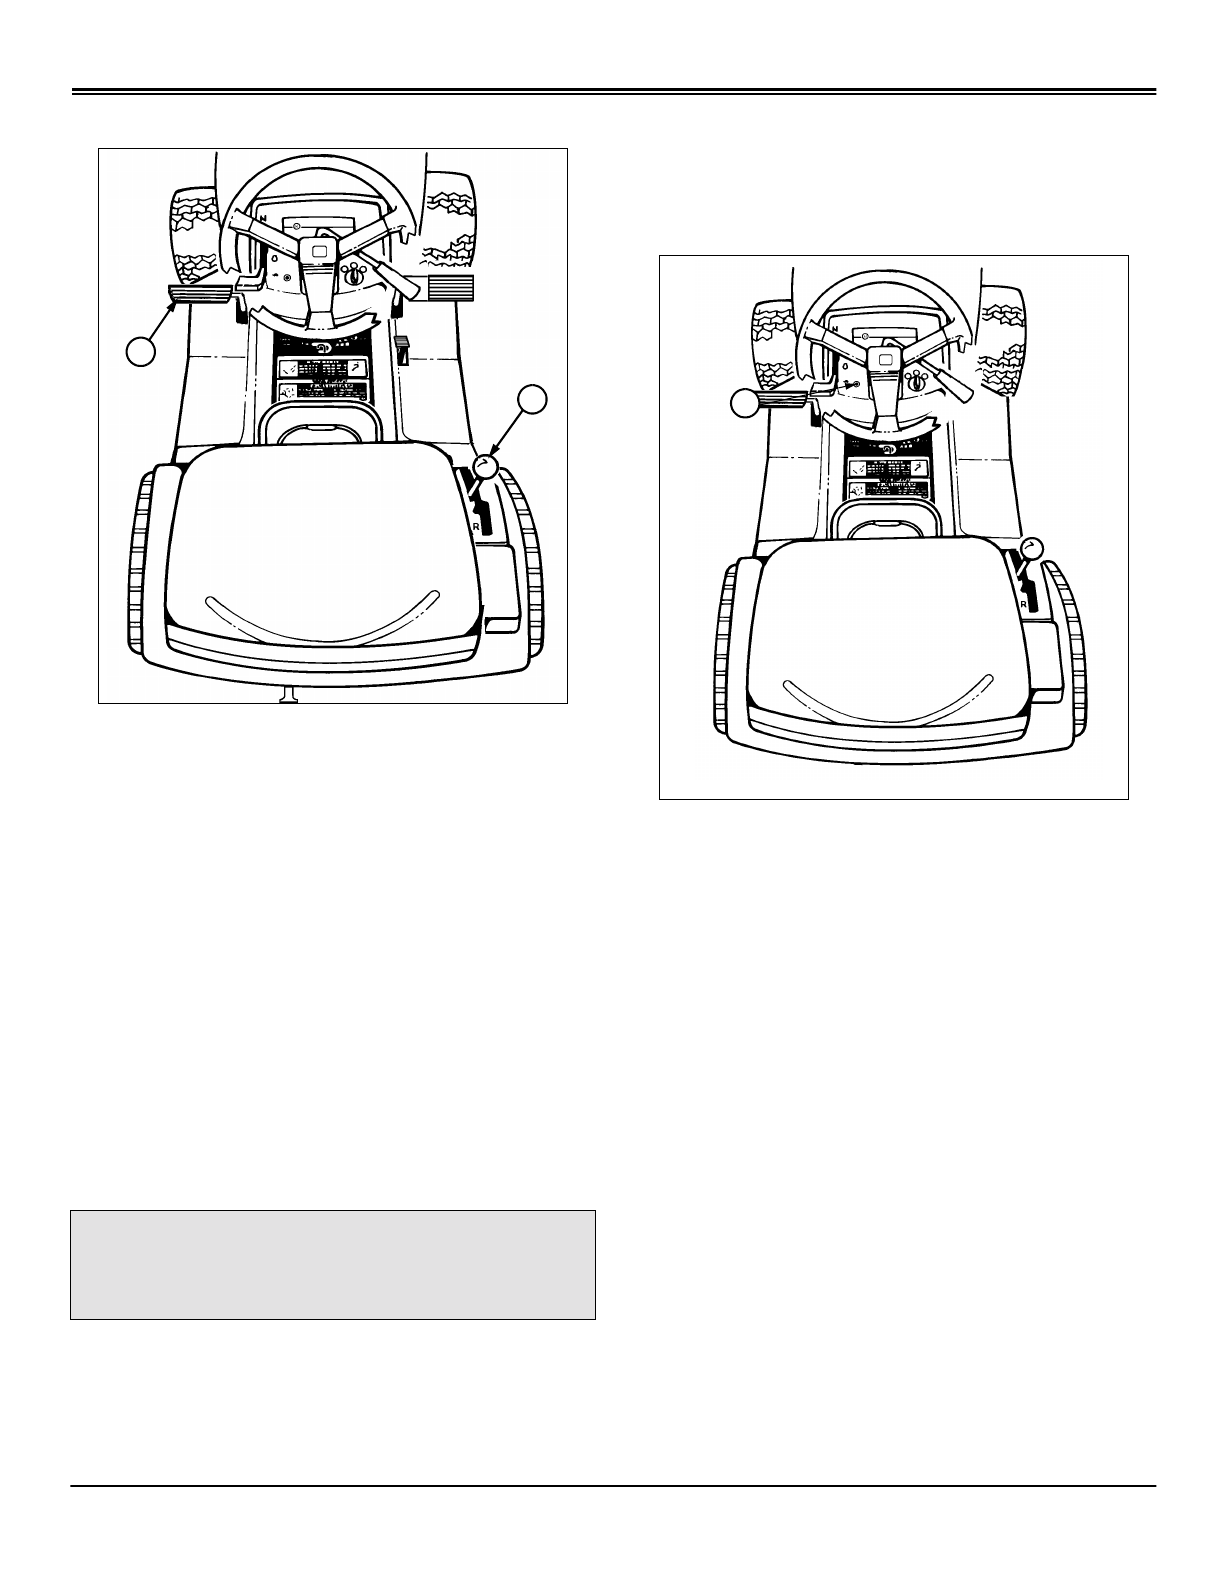 Page 15 of Scotts Lawn Mower S1642, S1742, S2046 User